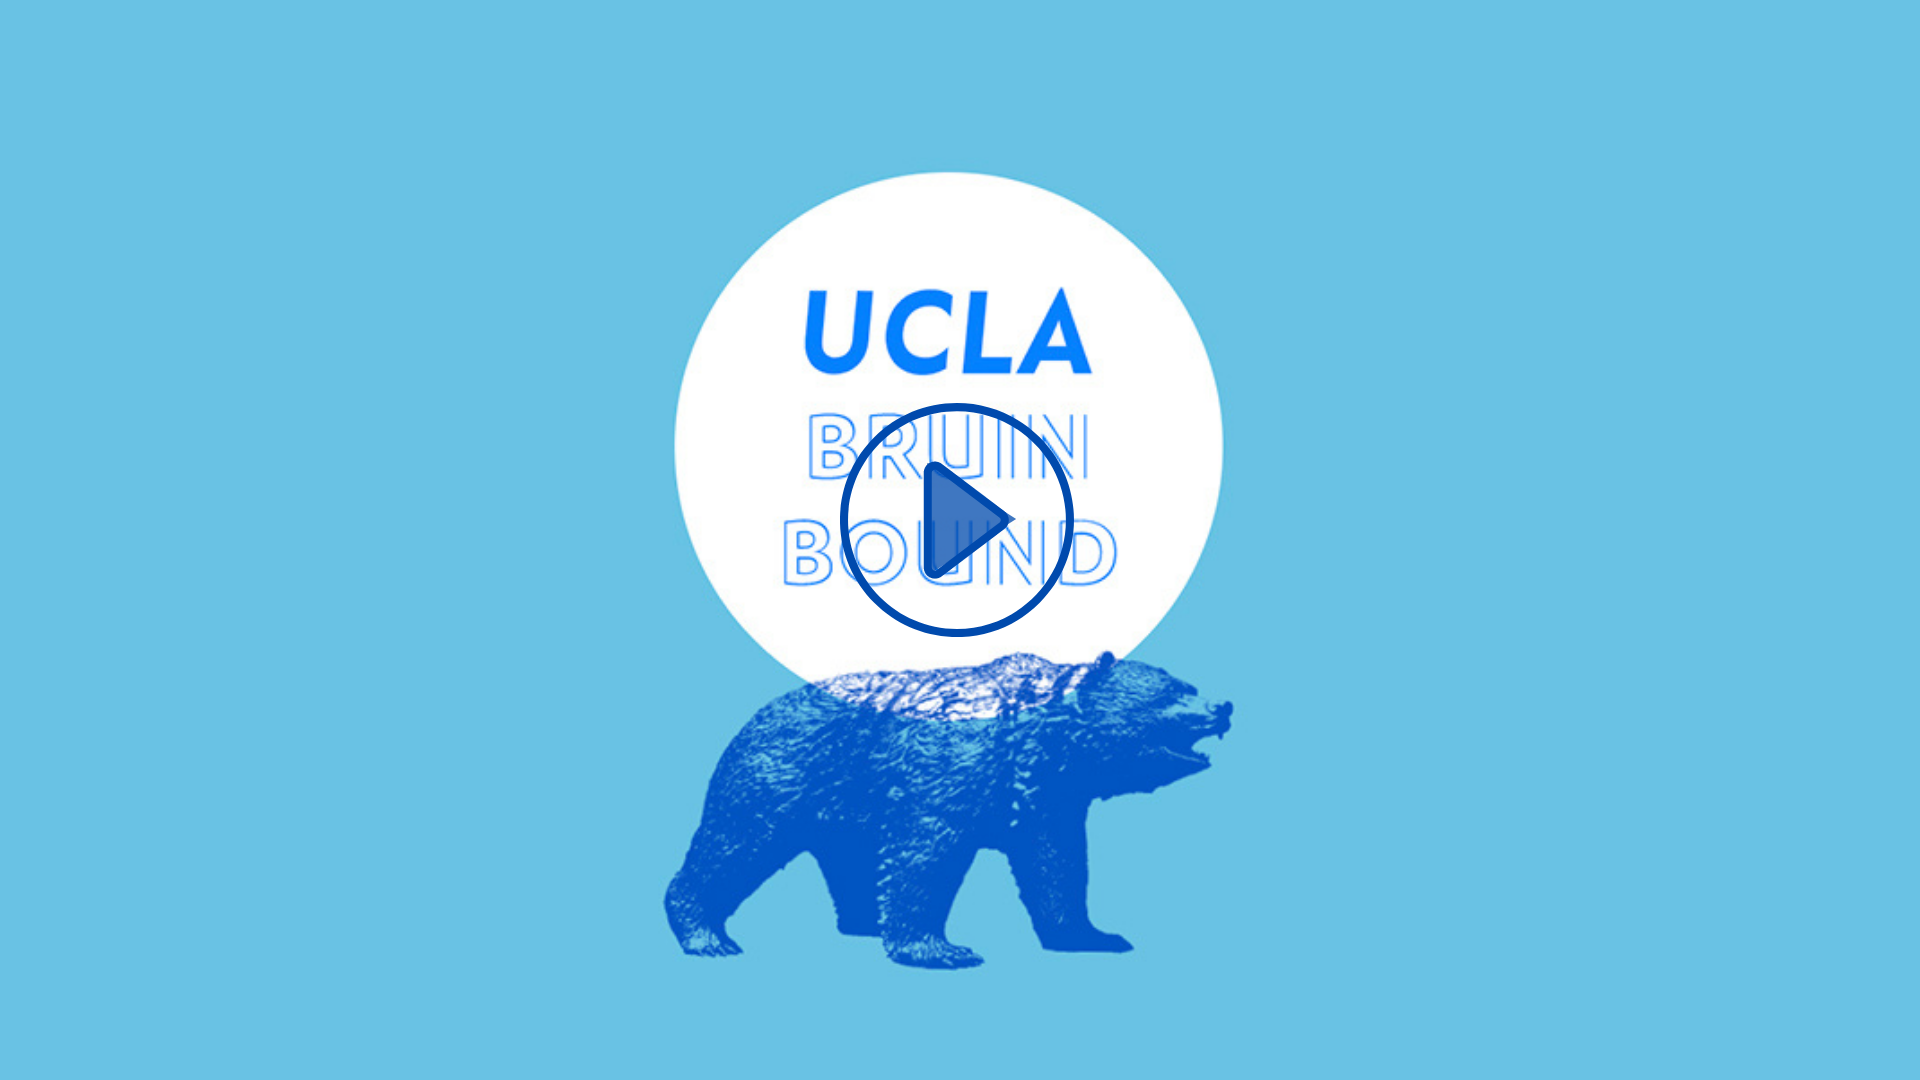 Guidebook BruinBound Opening video with UCLA Bruin Bear